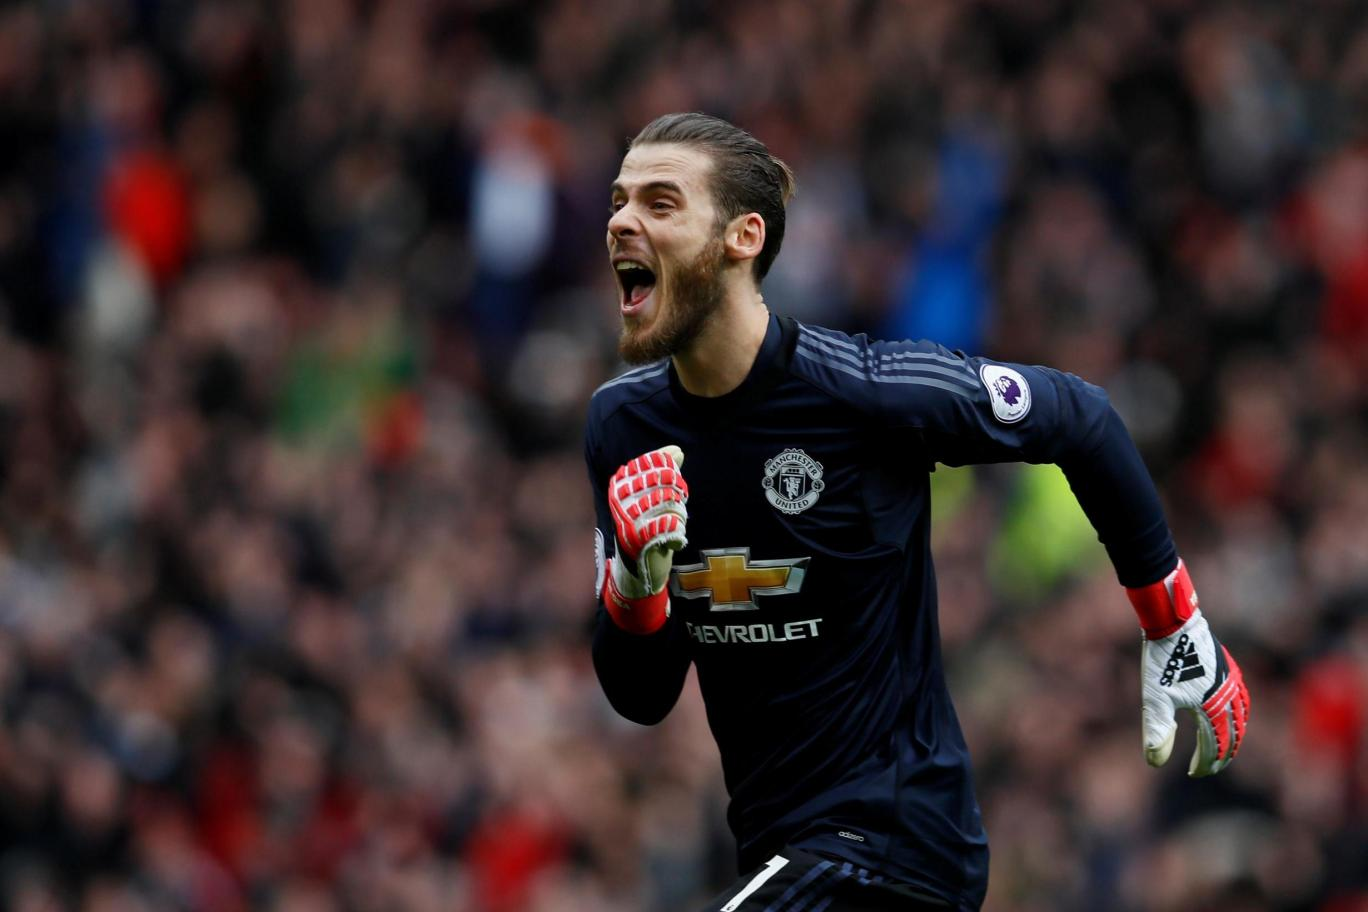 David De Gea has served Manchester United with distinction